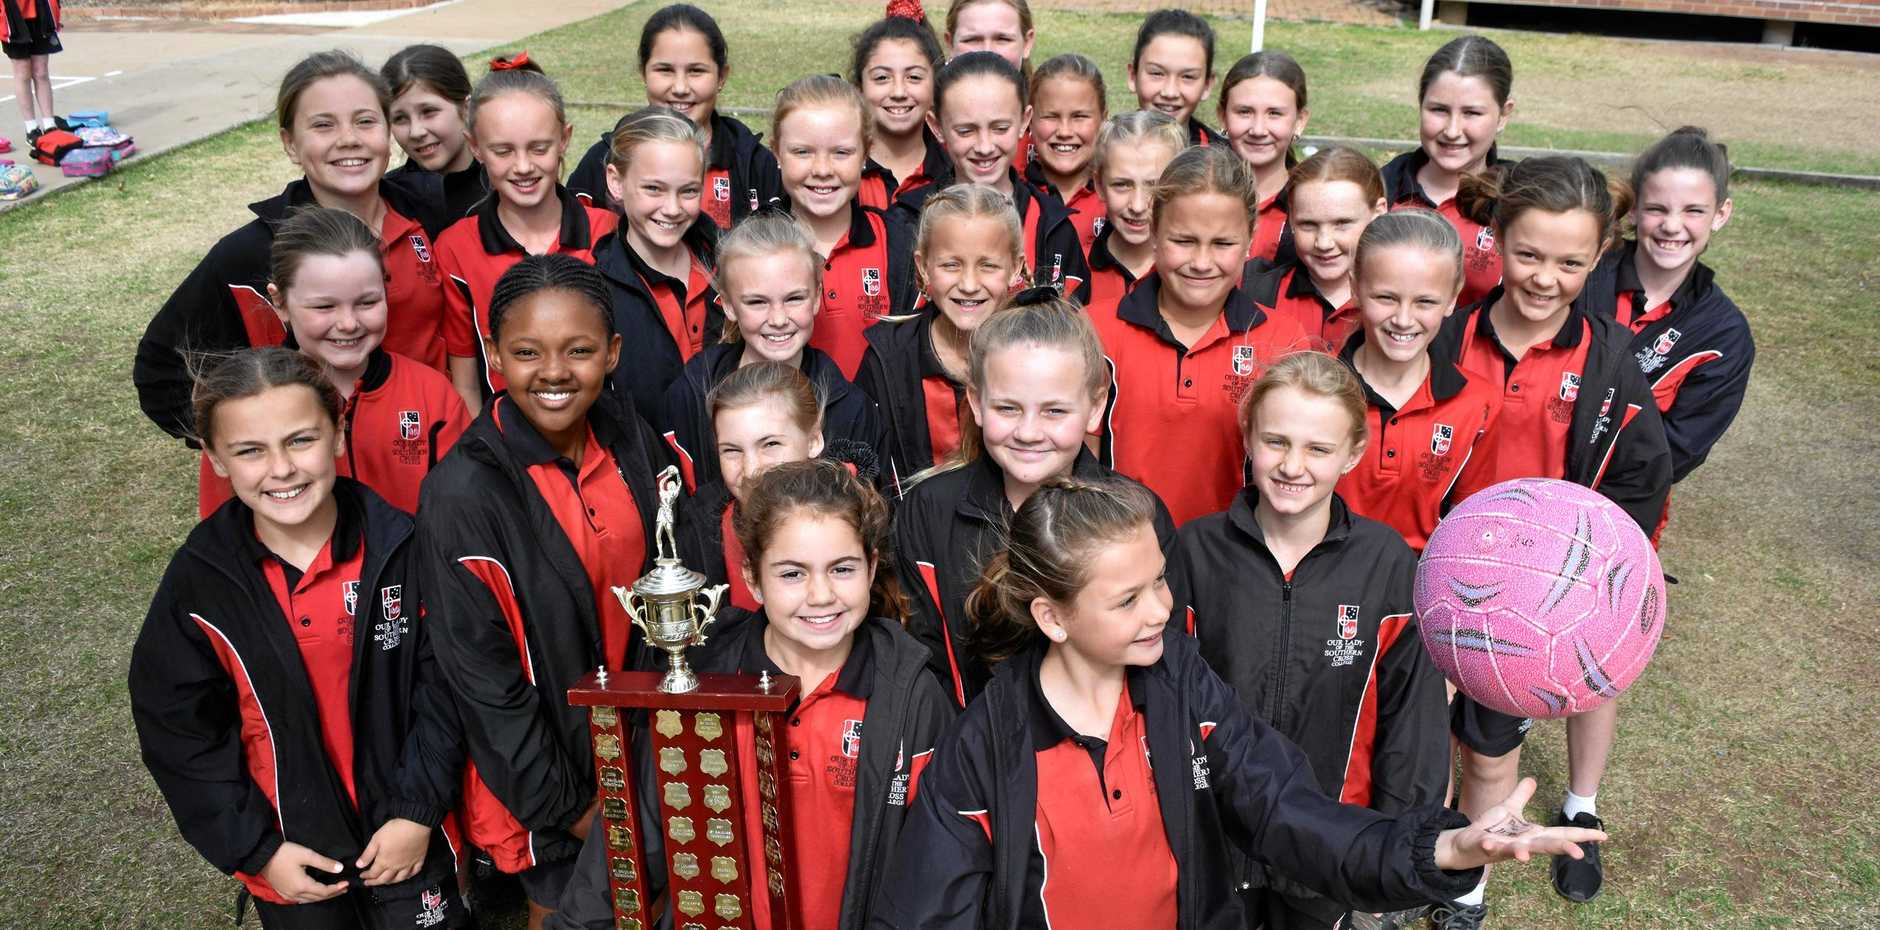 SHOOTING STARS: All 29 girls who participated in the Catholic Schools Week netball competition walked away with a lot more than a few wins and some points scored.